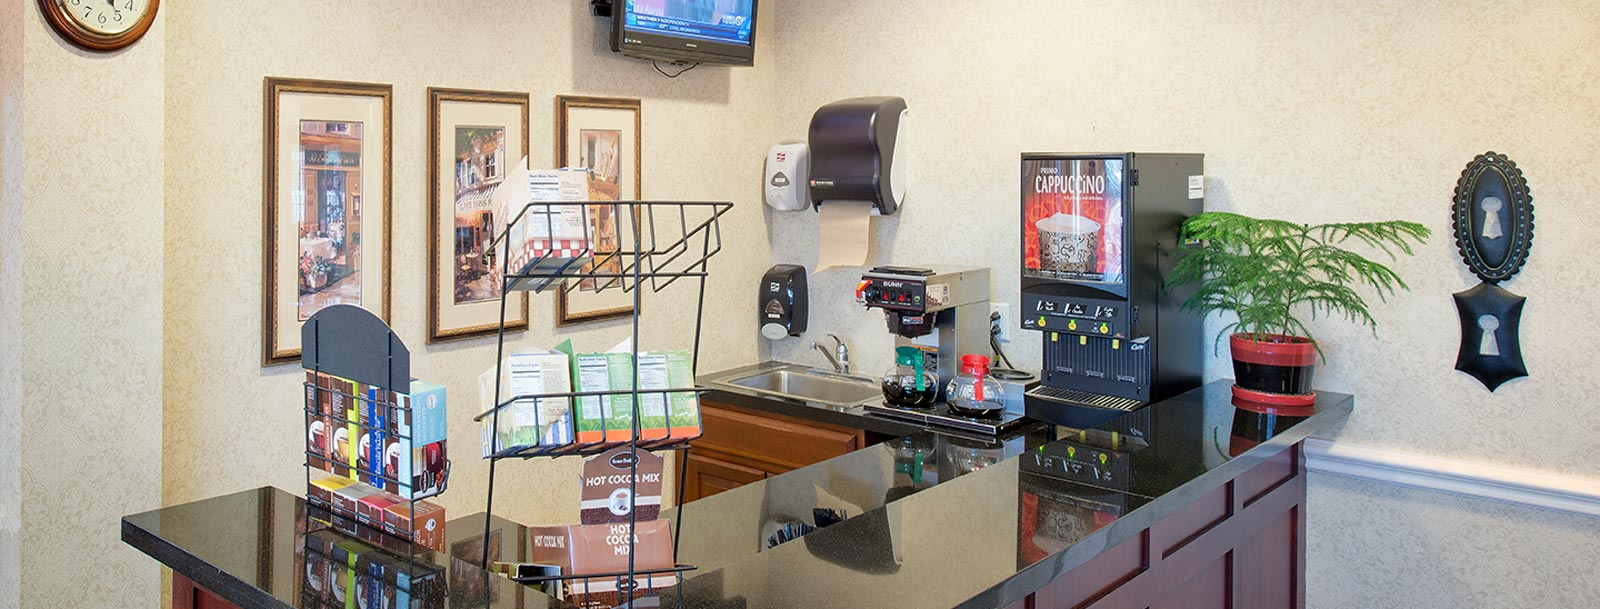 Capuccino bar at the senior living in Olathe